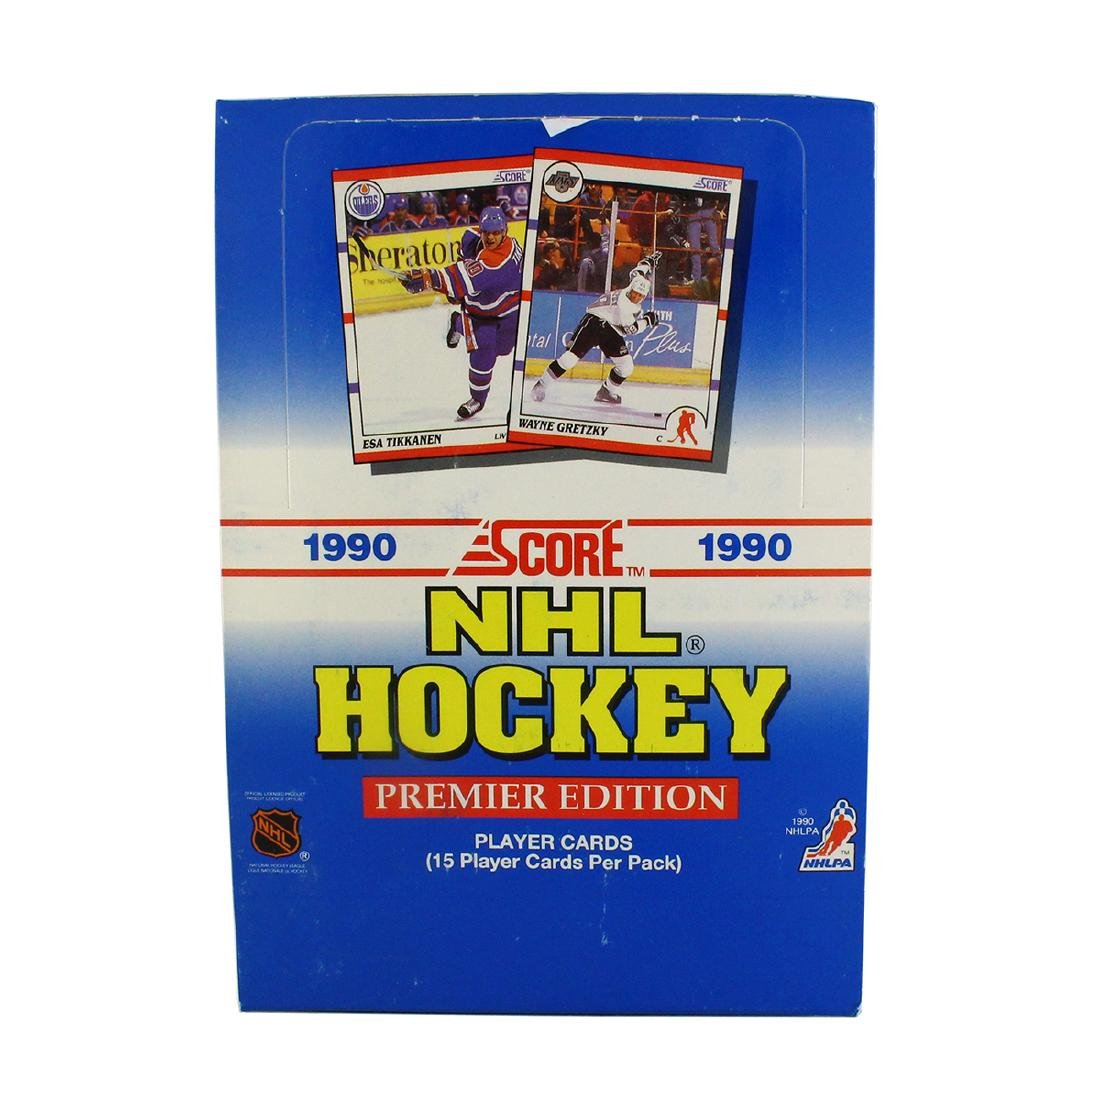 Rare 1990 Box Premier Edition NHL Cards Over 500 Cards